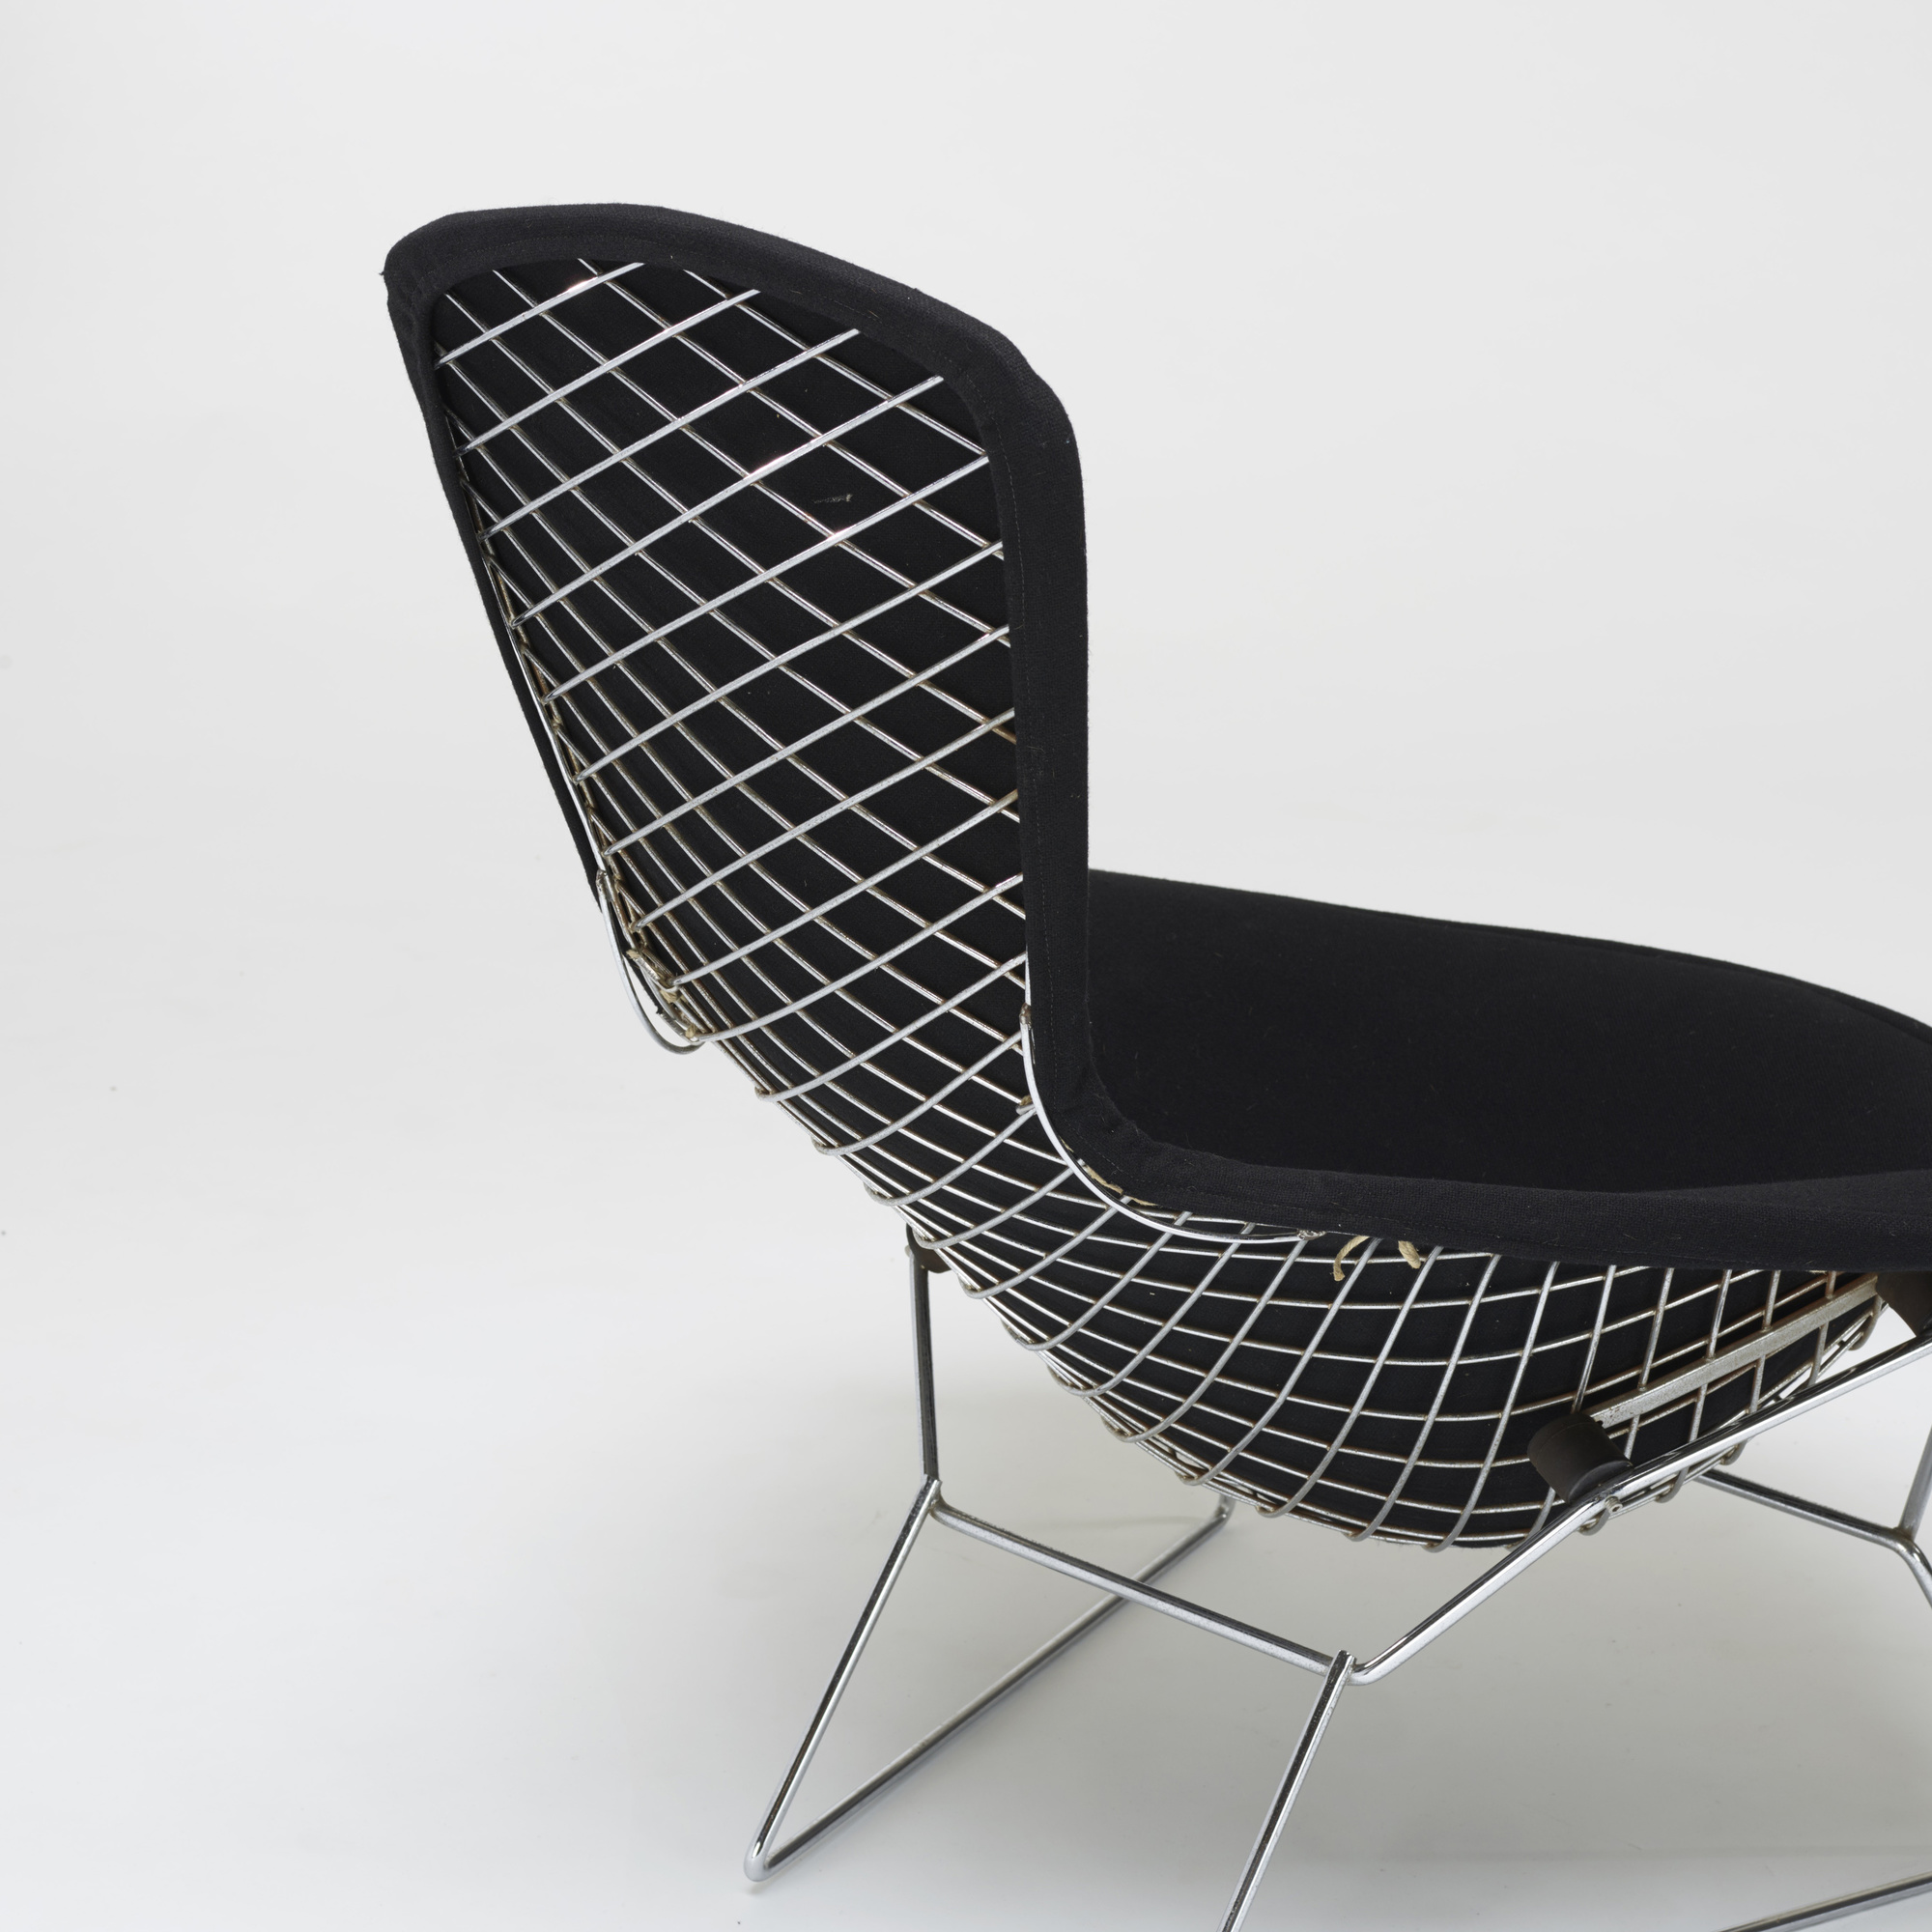 172: Harry Bertoia / Bird chair and ottoman (3 of 3)